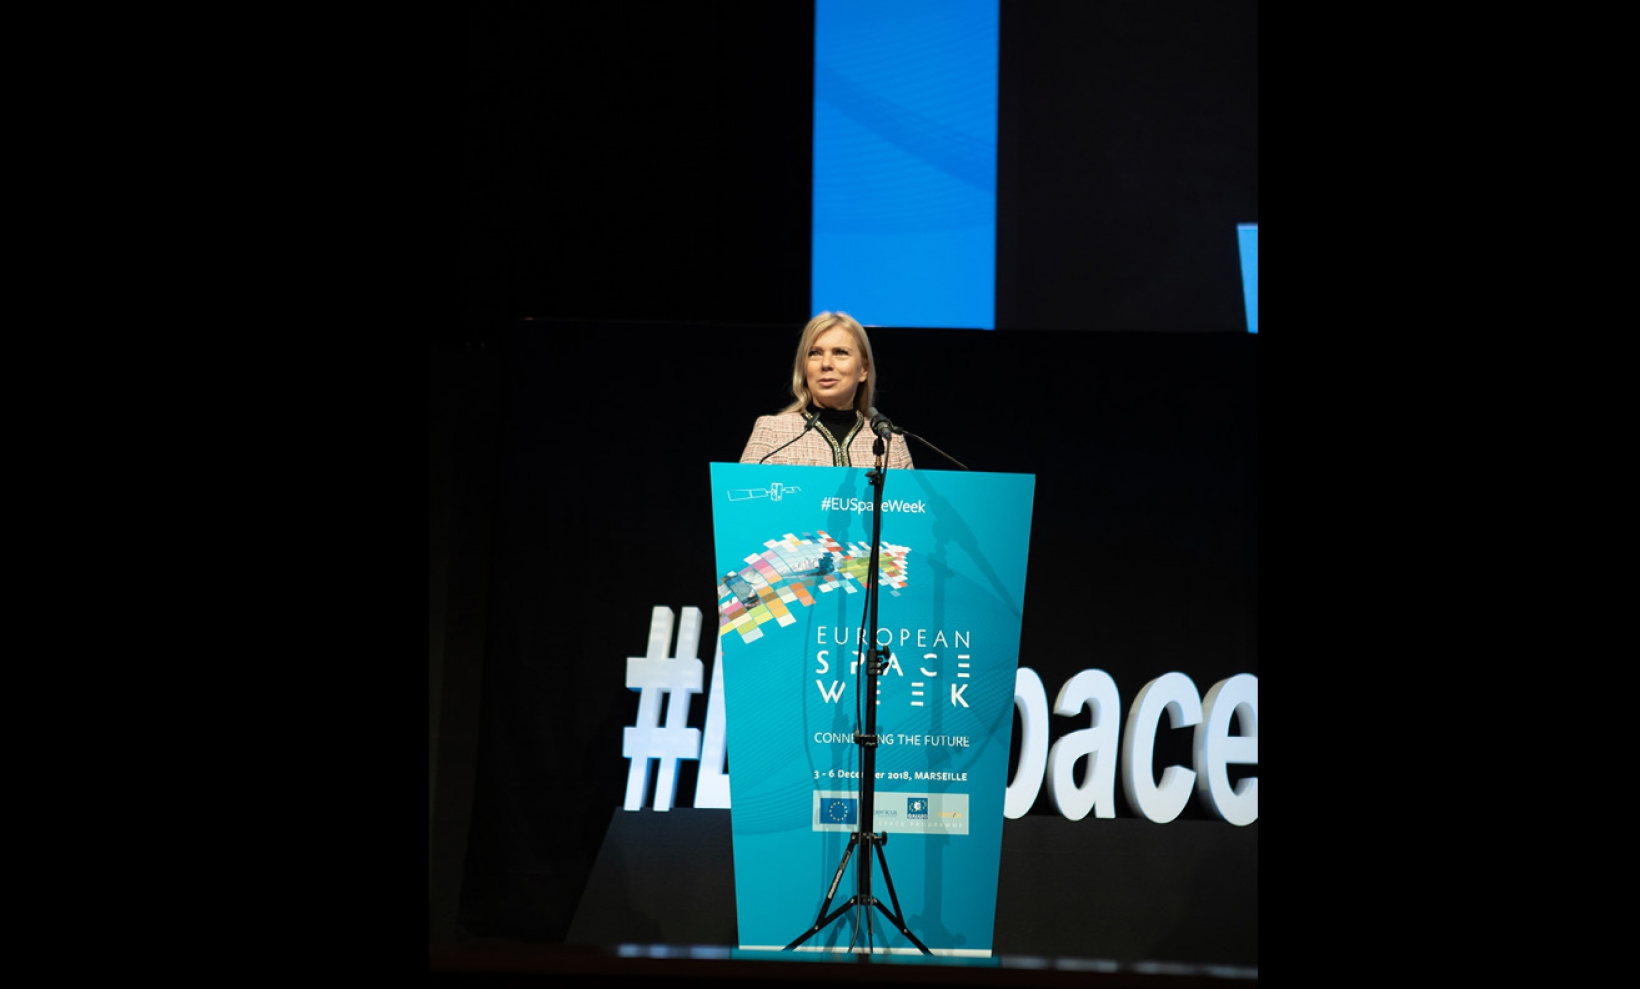 Elzbieta Bieńkowska, European Commissioner for Internal Market, Industry, Entrepreneurship and SMEs, addresses the European Space Week opening plenary.